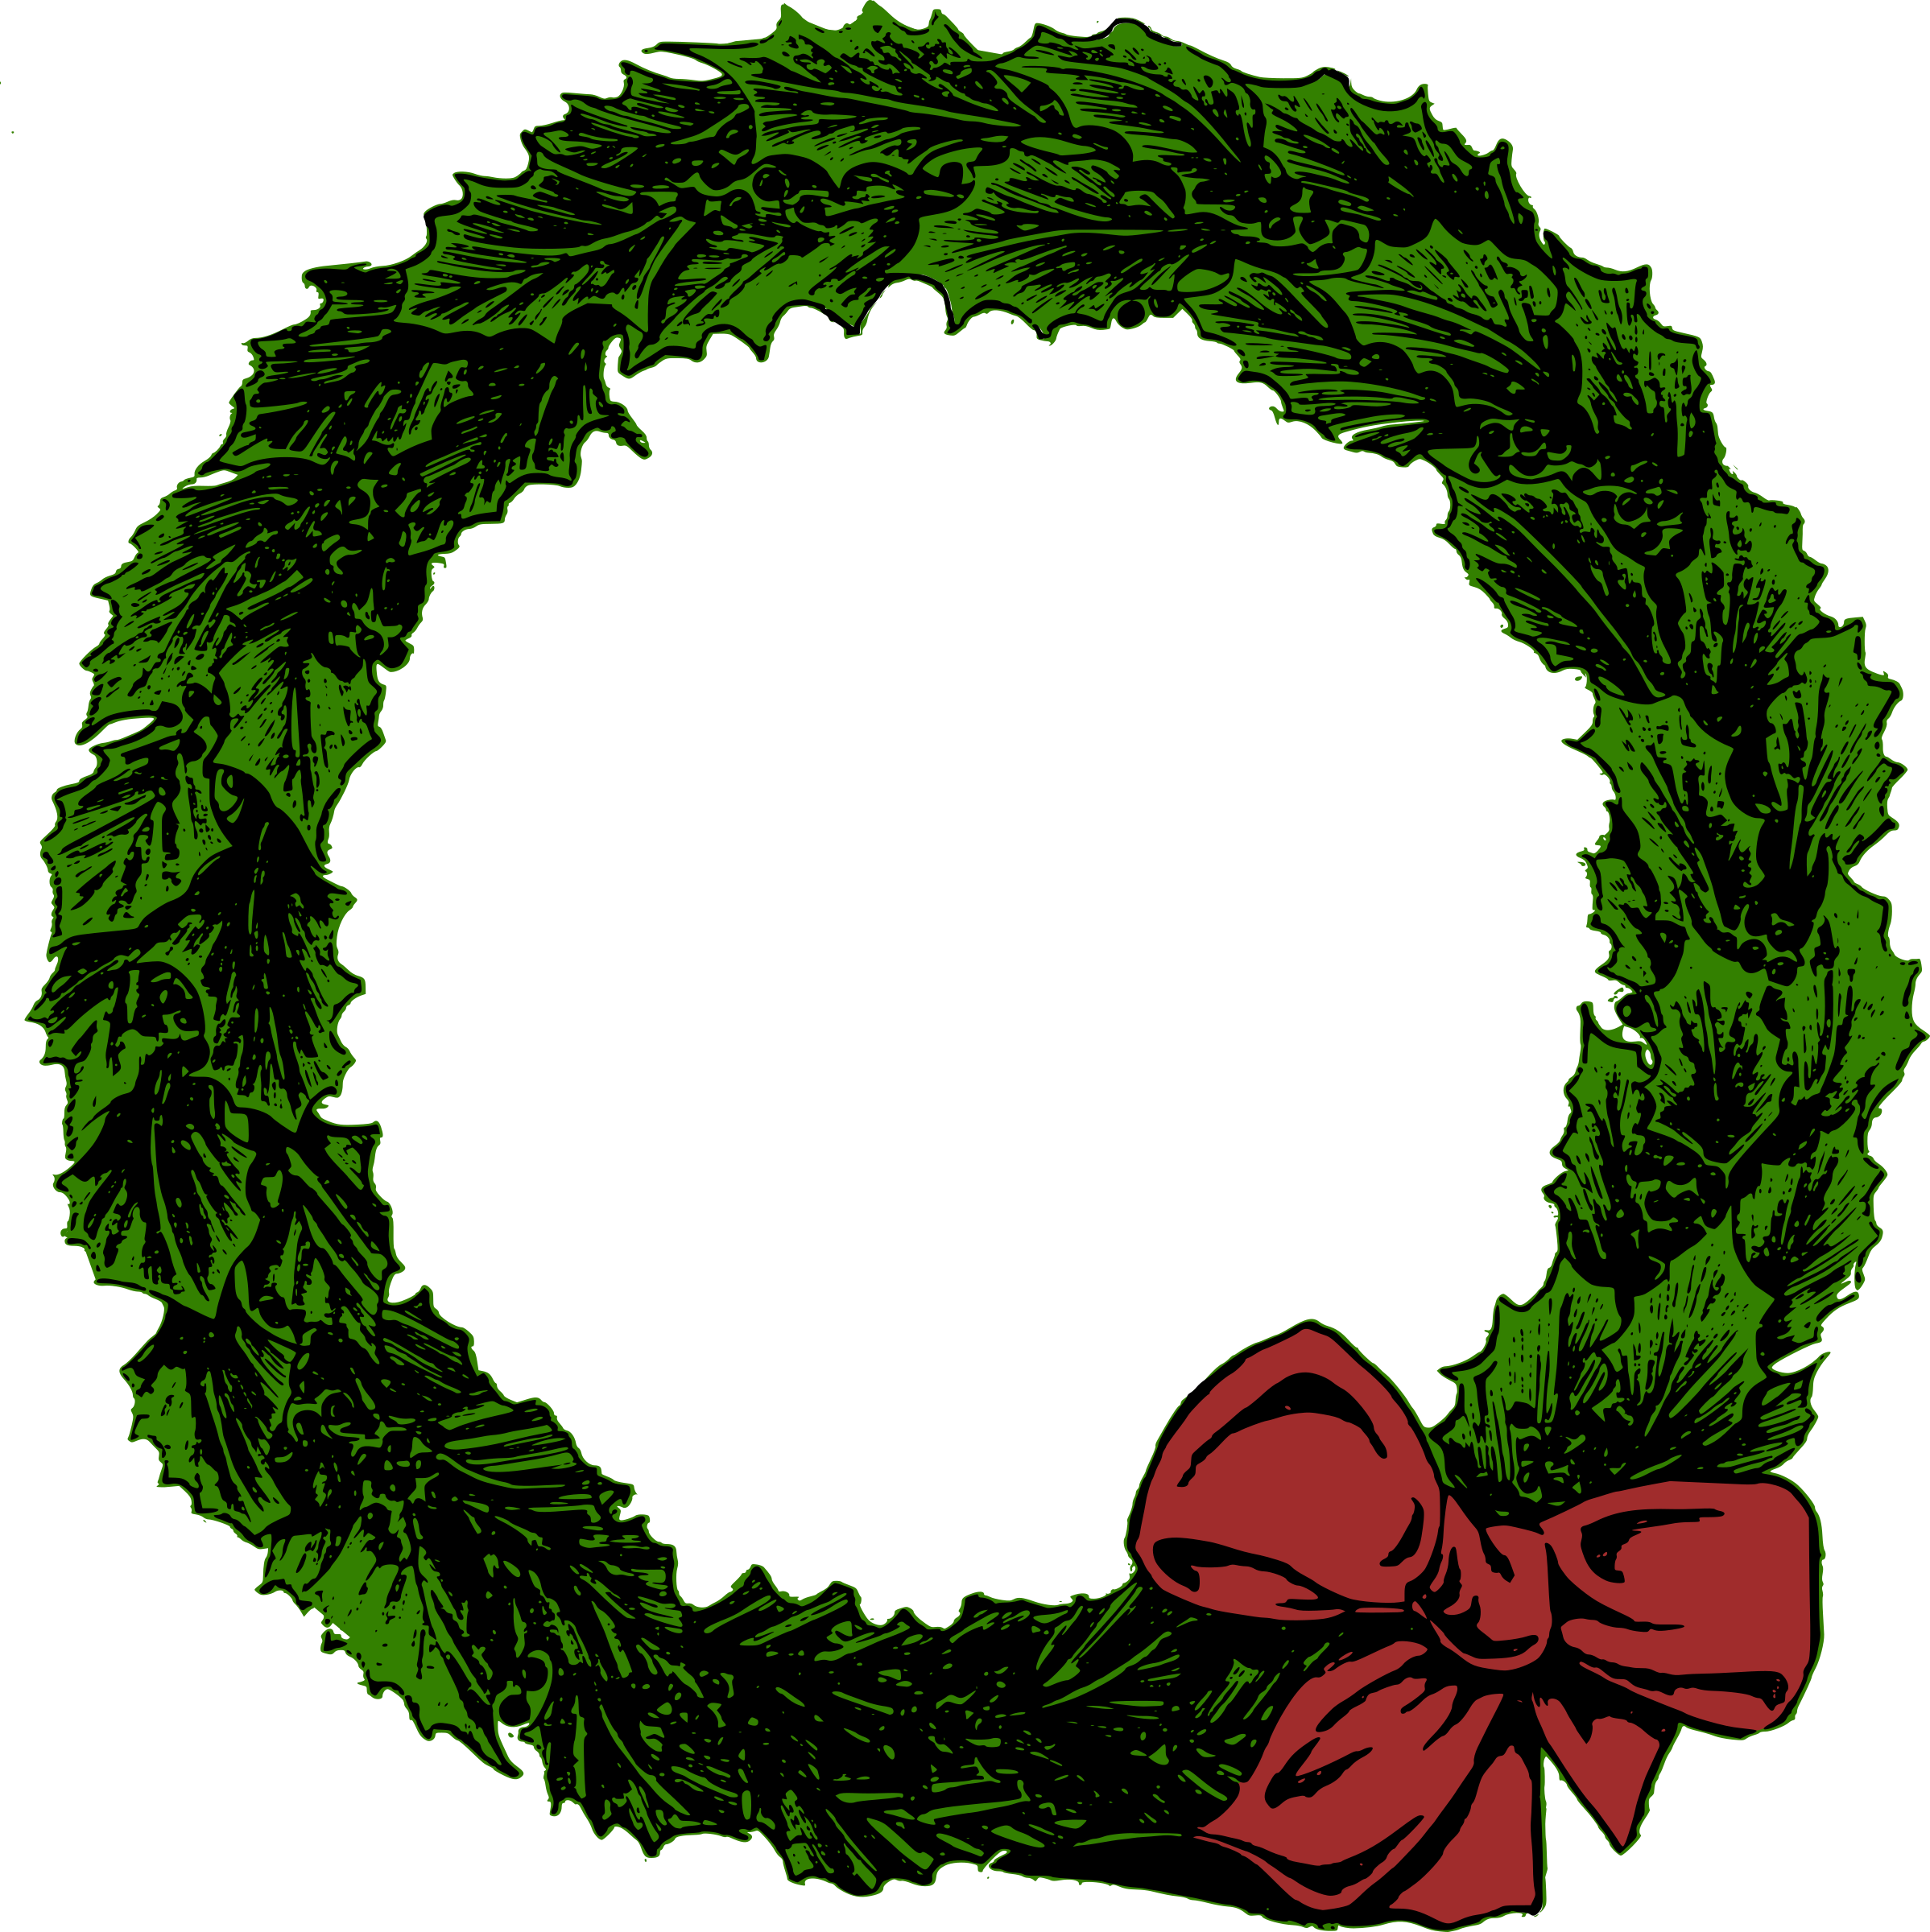 Christmas wreath clipart png picture royalty free Clipart - Xmas Wreath picture royalty free